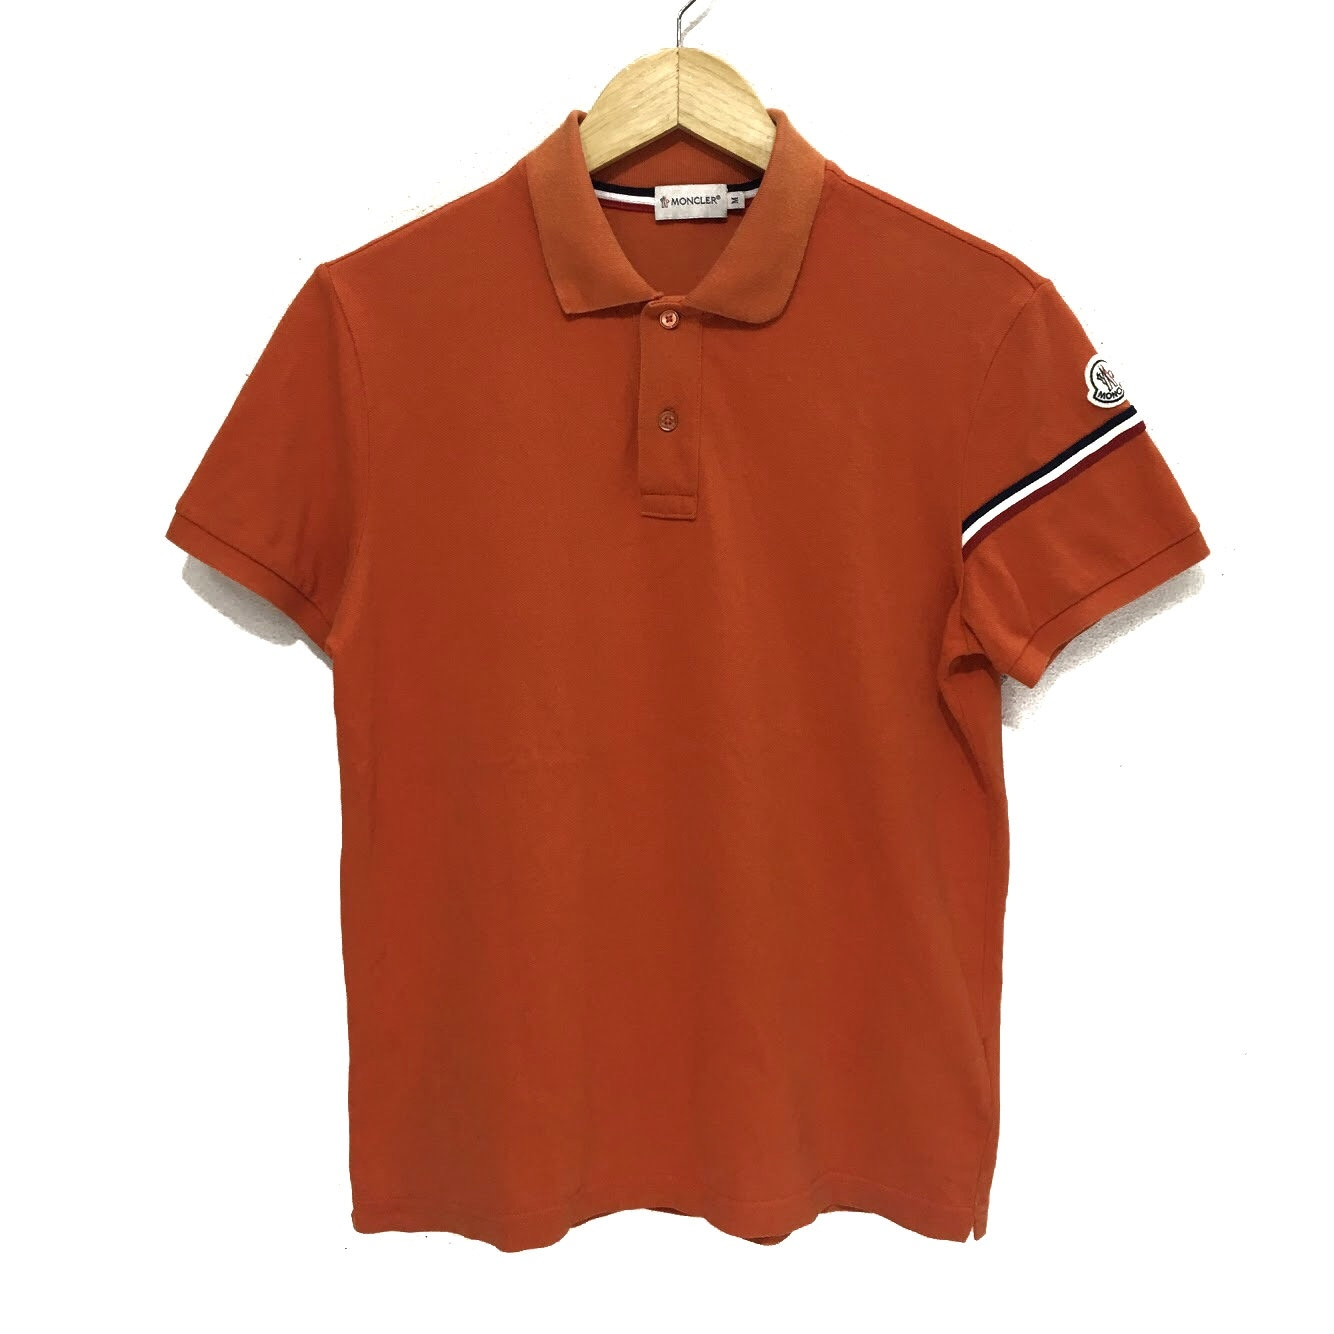 cd03c2fcc2f1 MONCLER Orange Casual Polo Tee Shirt Top Collar Rooster Logo